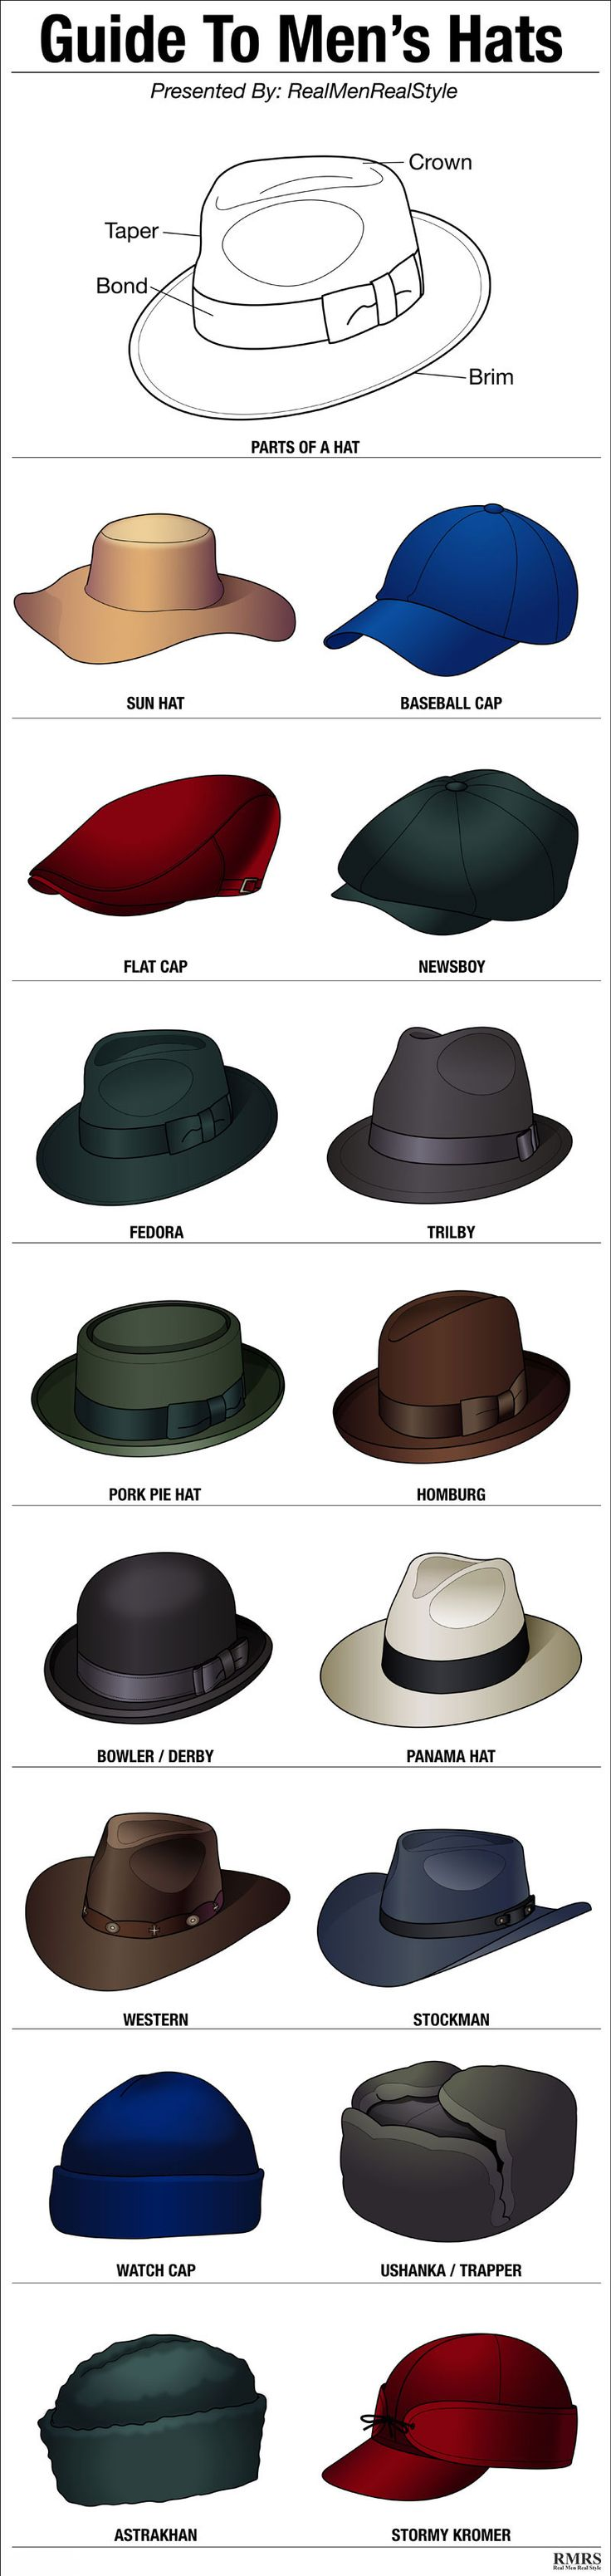 16 Stylish Men's Hats | Hat Style Guide | Man's Headwear Infographic